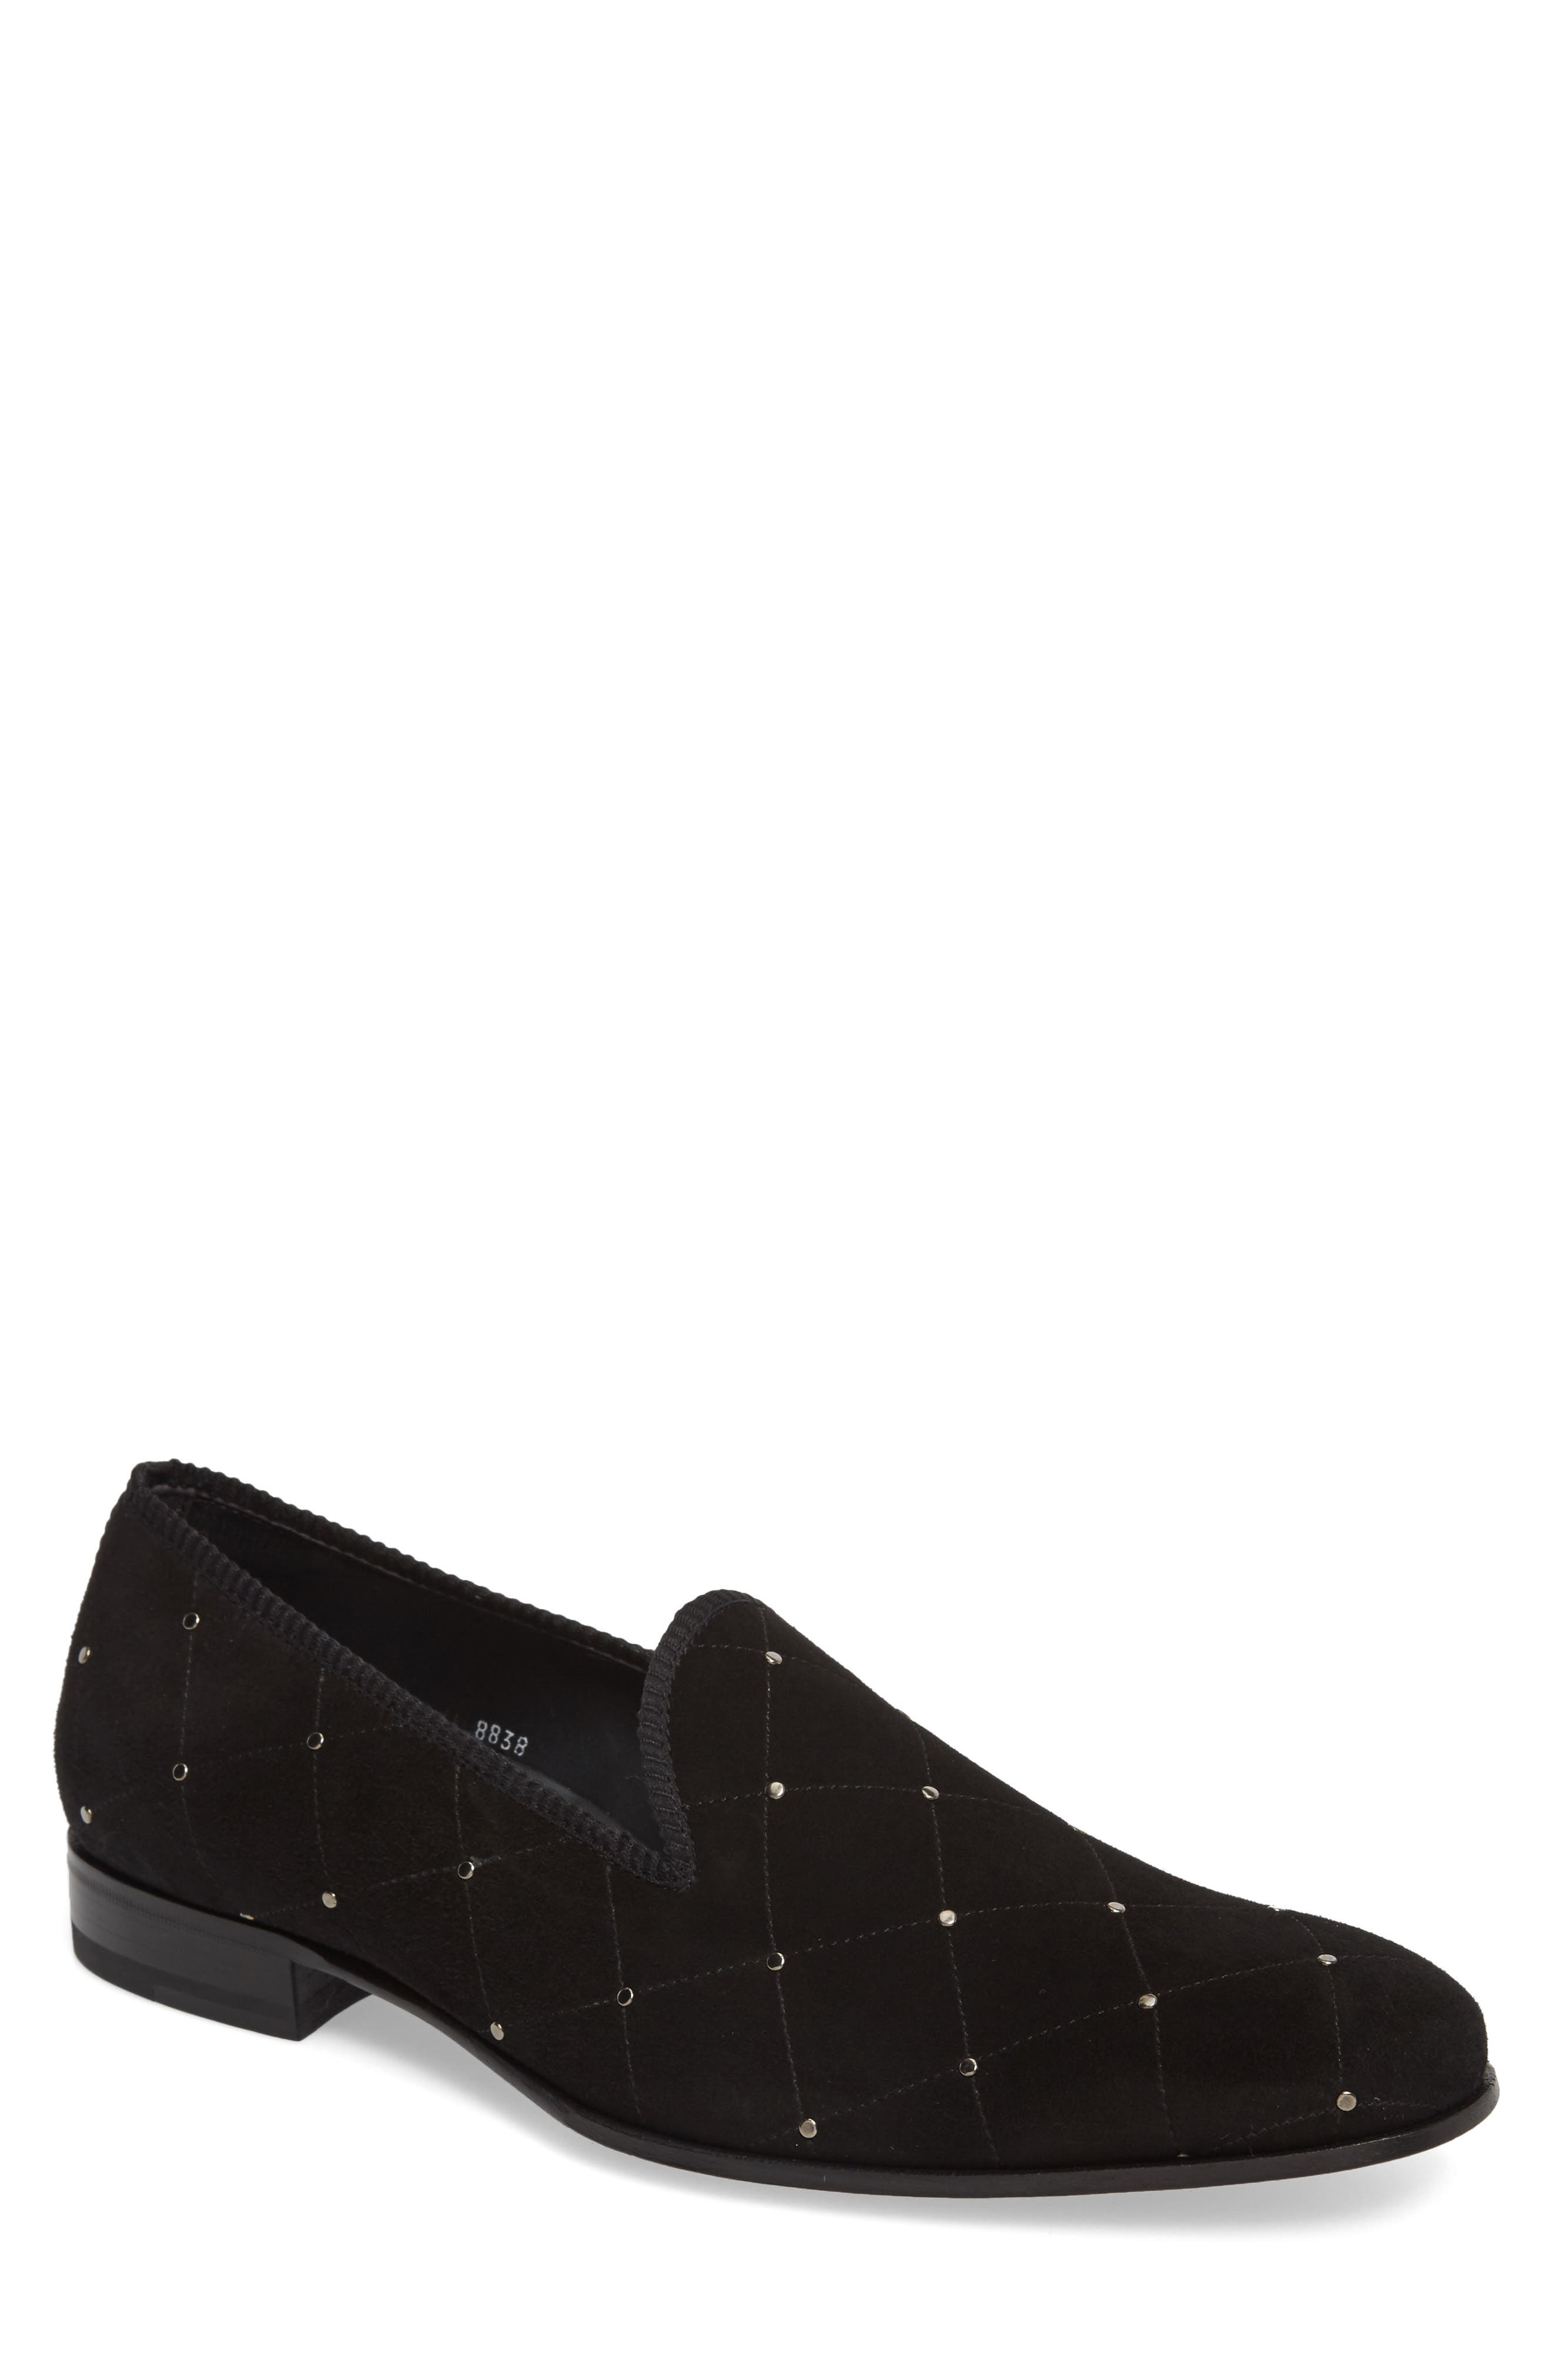 Talo Studded Venetian Loafer,                             Main thumbnail 1, color,                             BLACK SUEDE